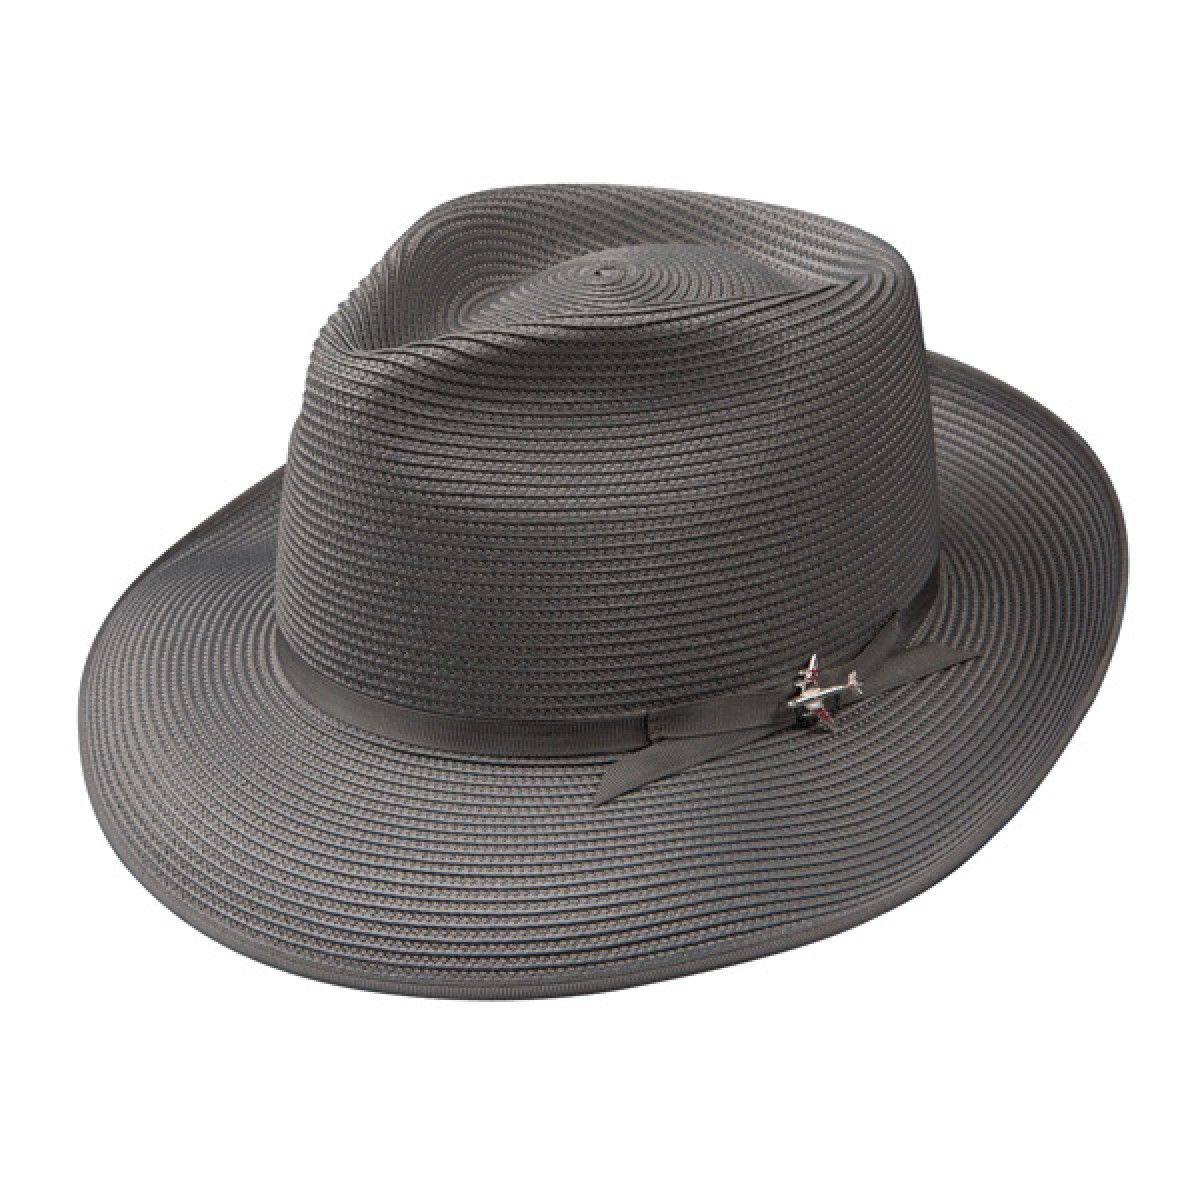 d0a9a7ab9f1f3 Stetson Stratoliner - Straw Fedora Hat  98.98